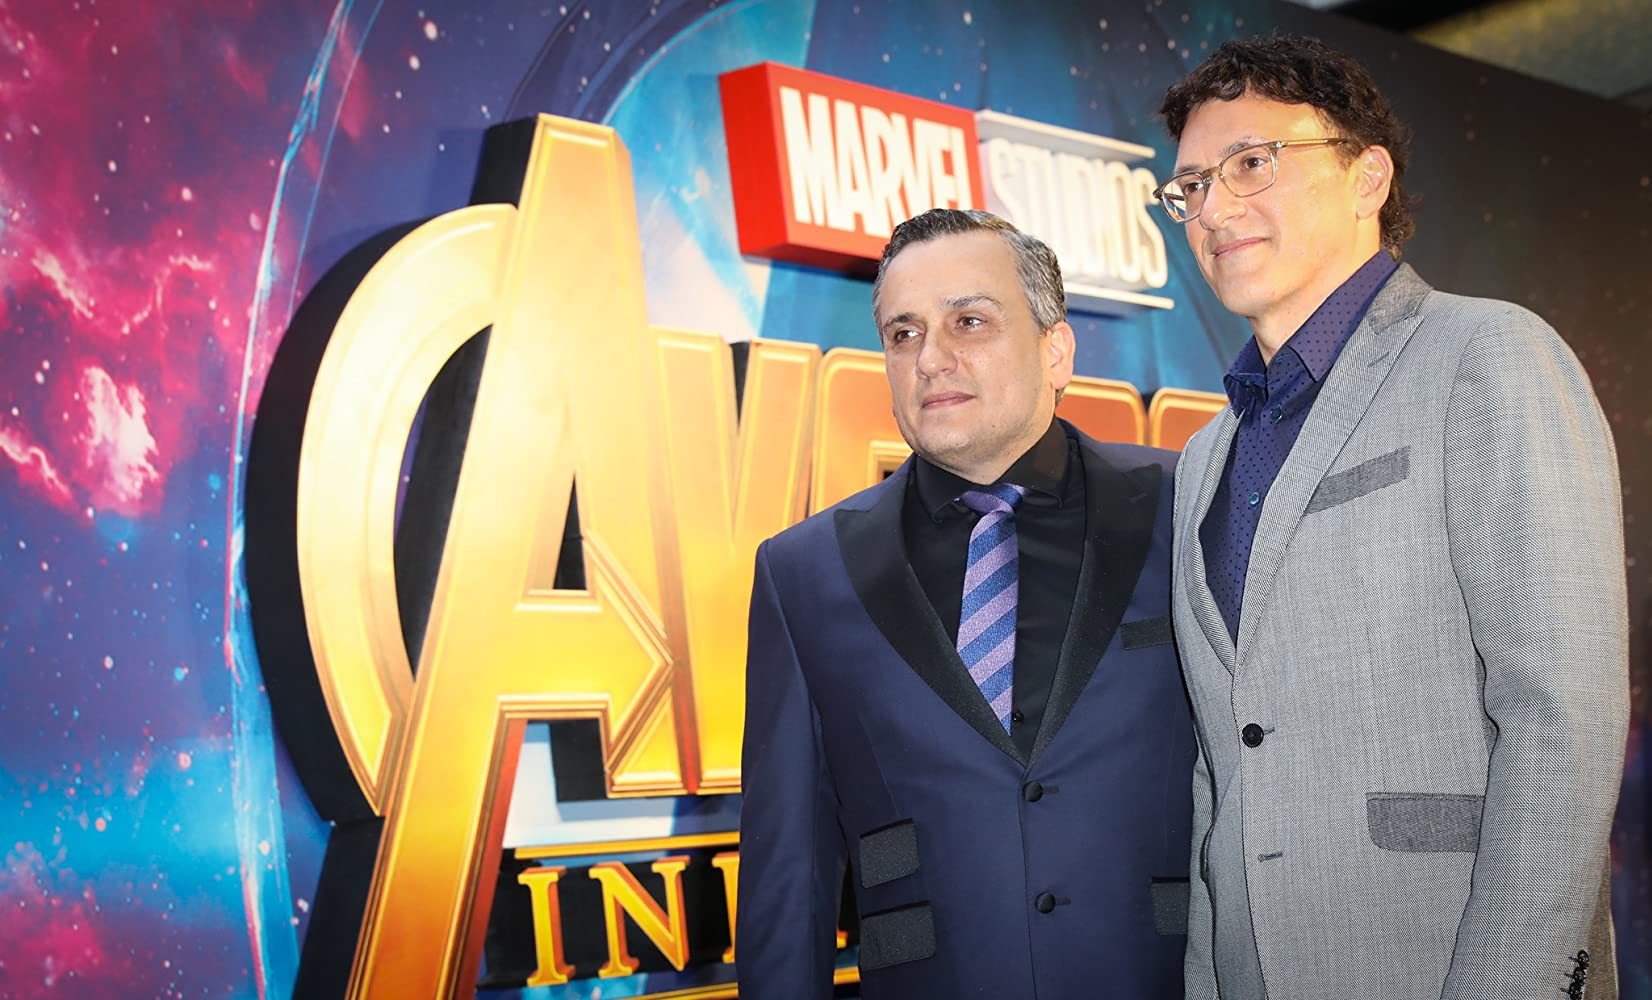 Anthony Russo and Joe Russo at an event for Avengers: Infinity War (2018)